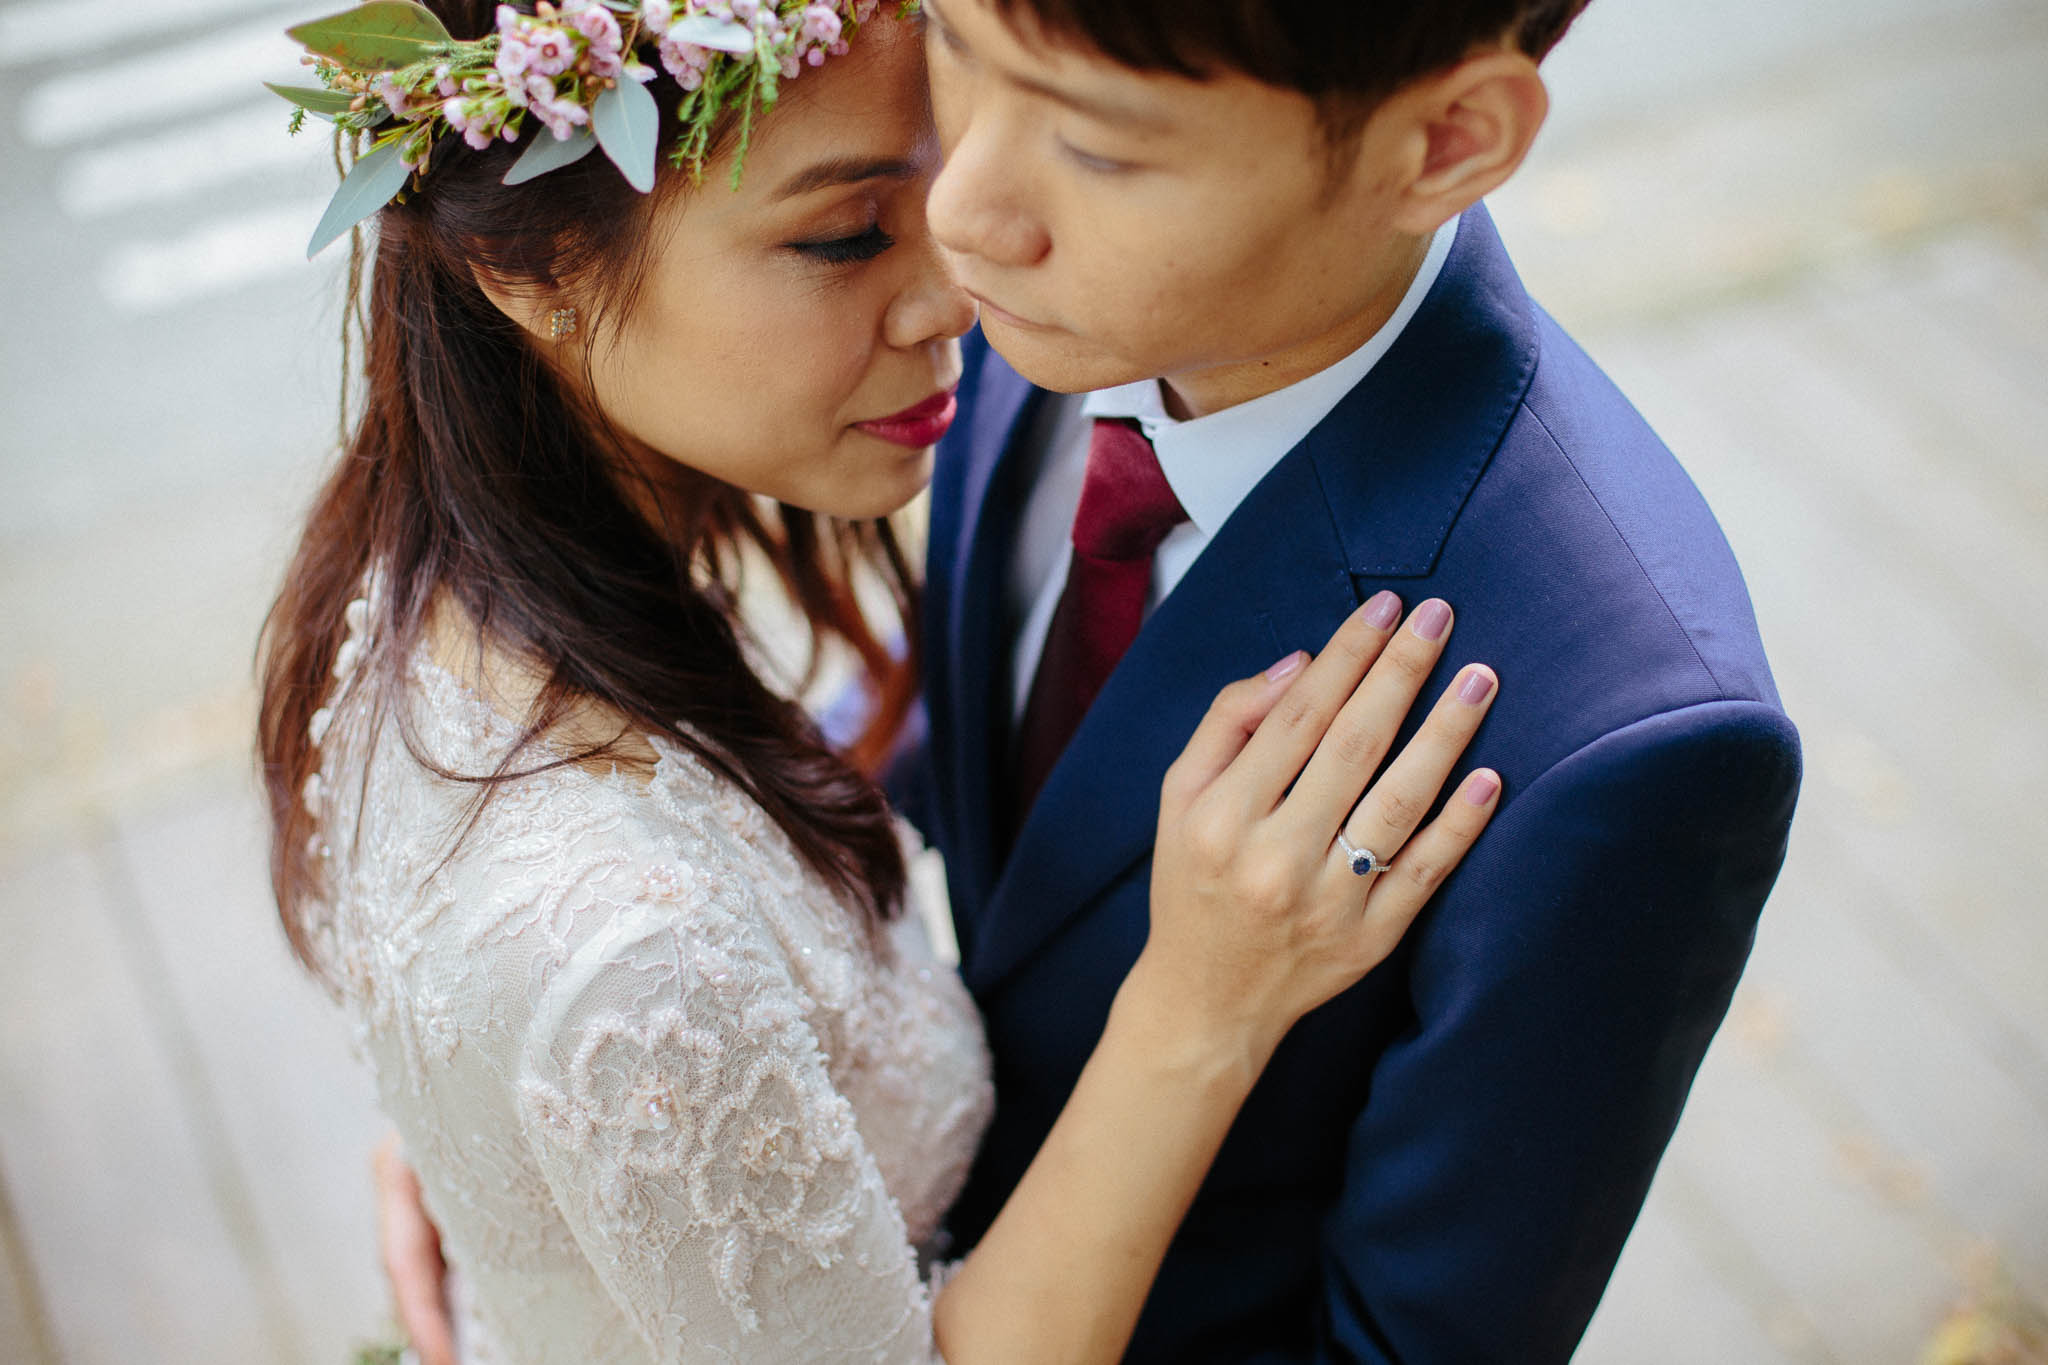 singapore-wedding-photographer-we-made-these-2016-selects-132.jpg